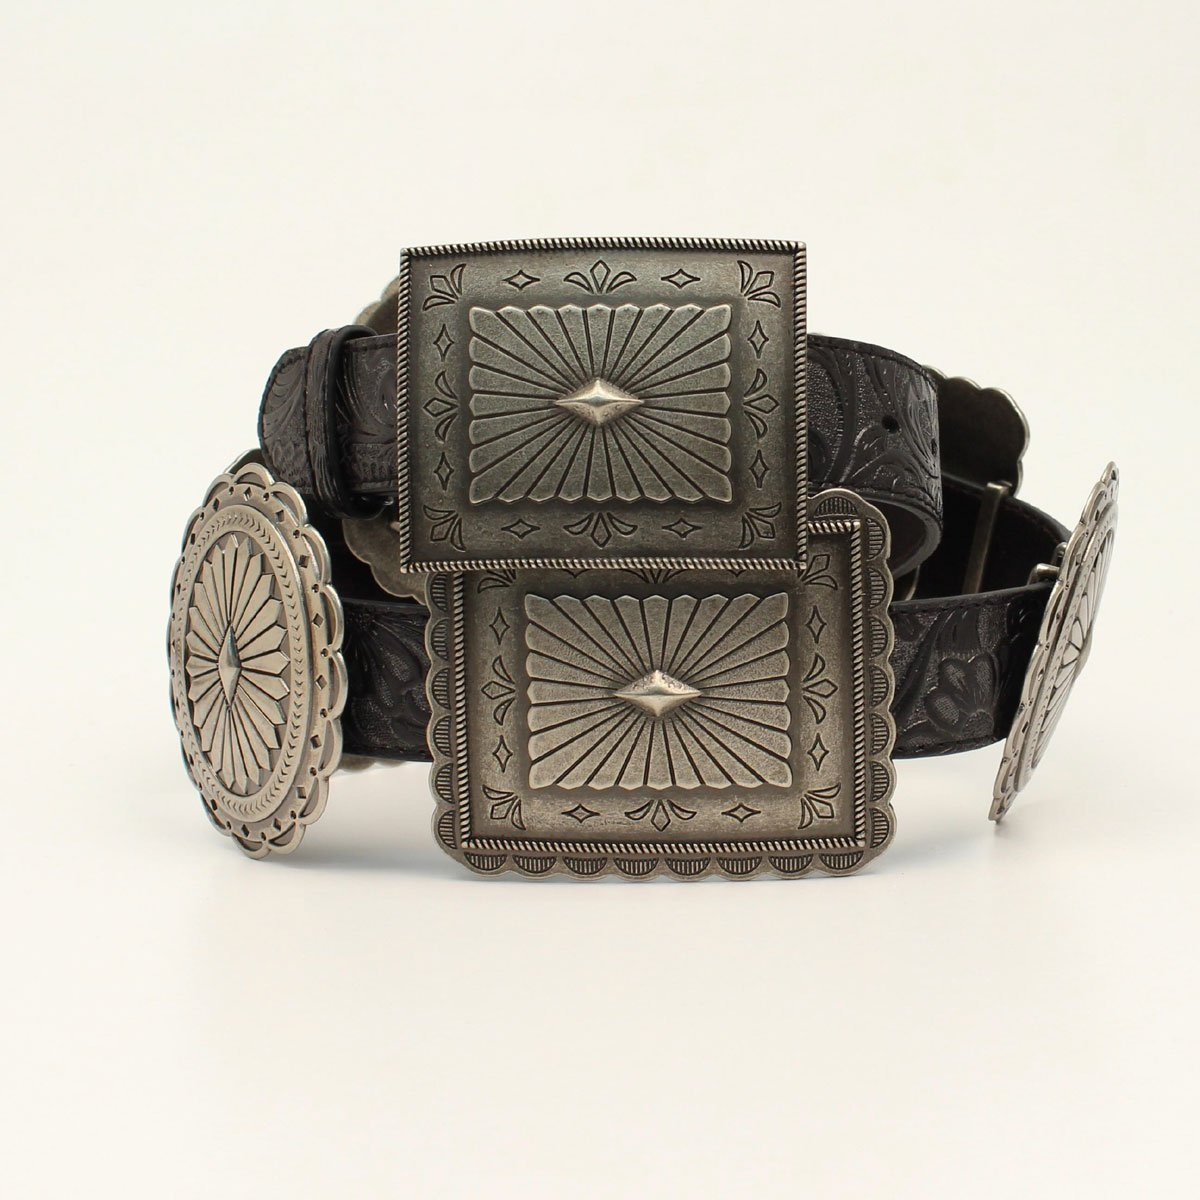 Embossed Concho Belt from Ariat